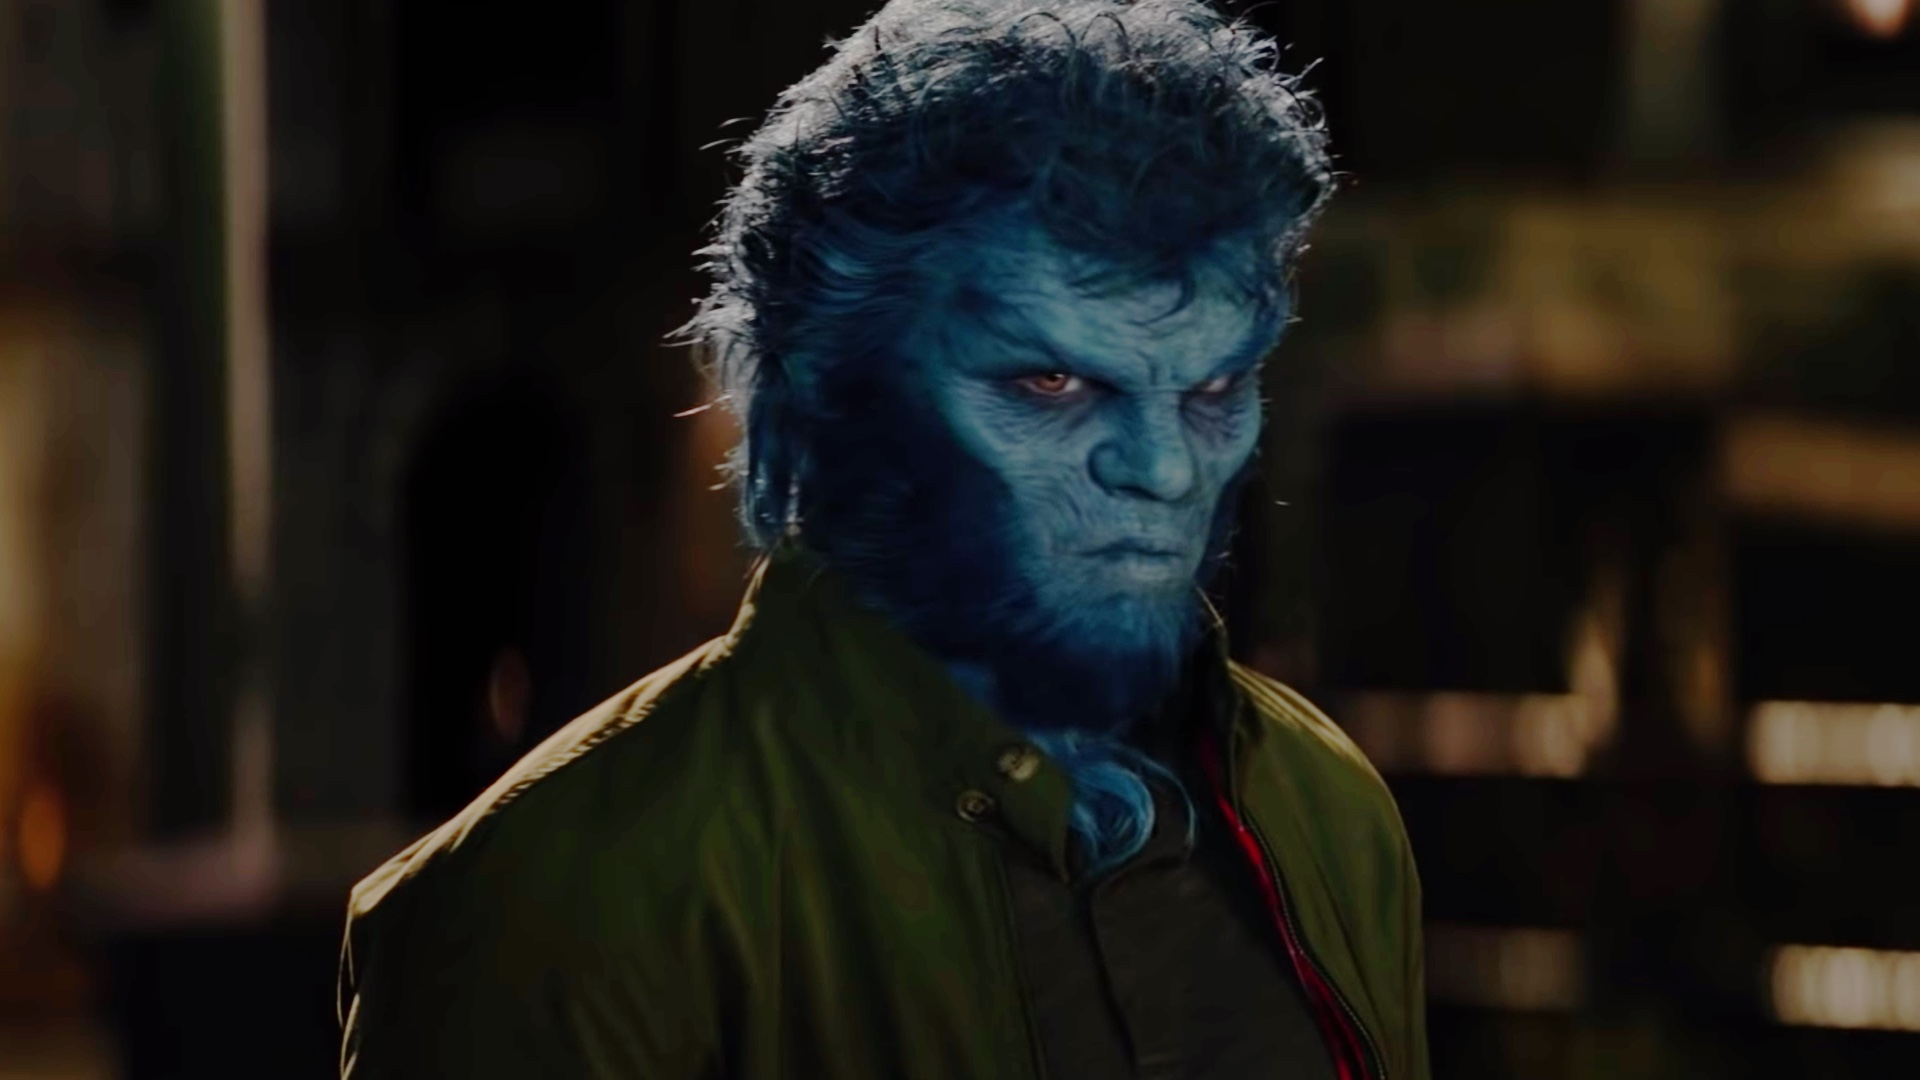 magneto-and-professor-x-face-off-in-this-new-clip-from-x-men-dark-phoenix-social.jpg